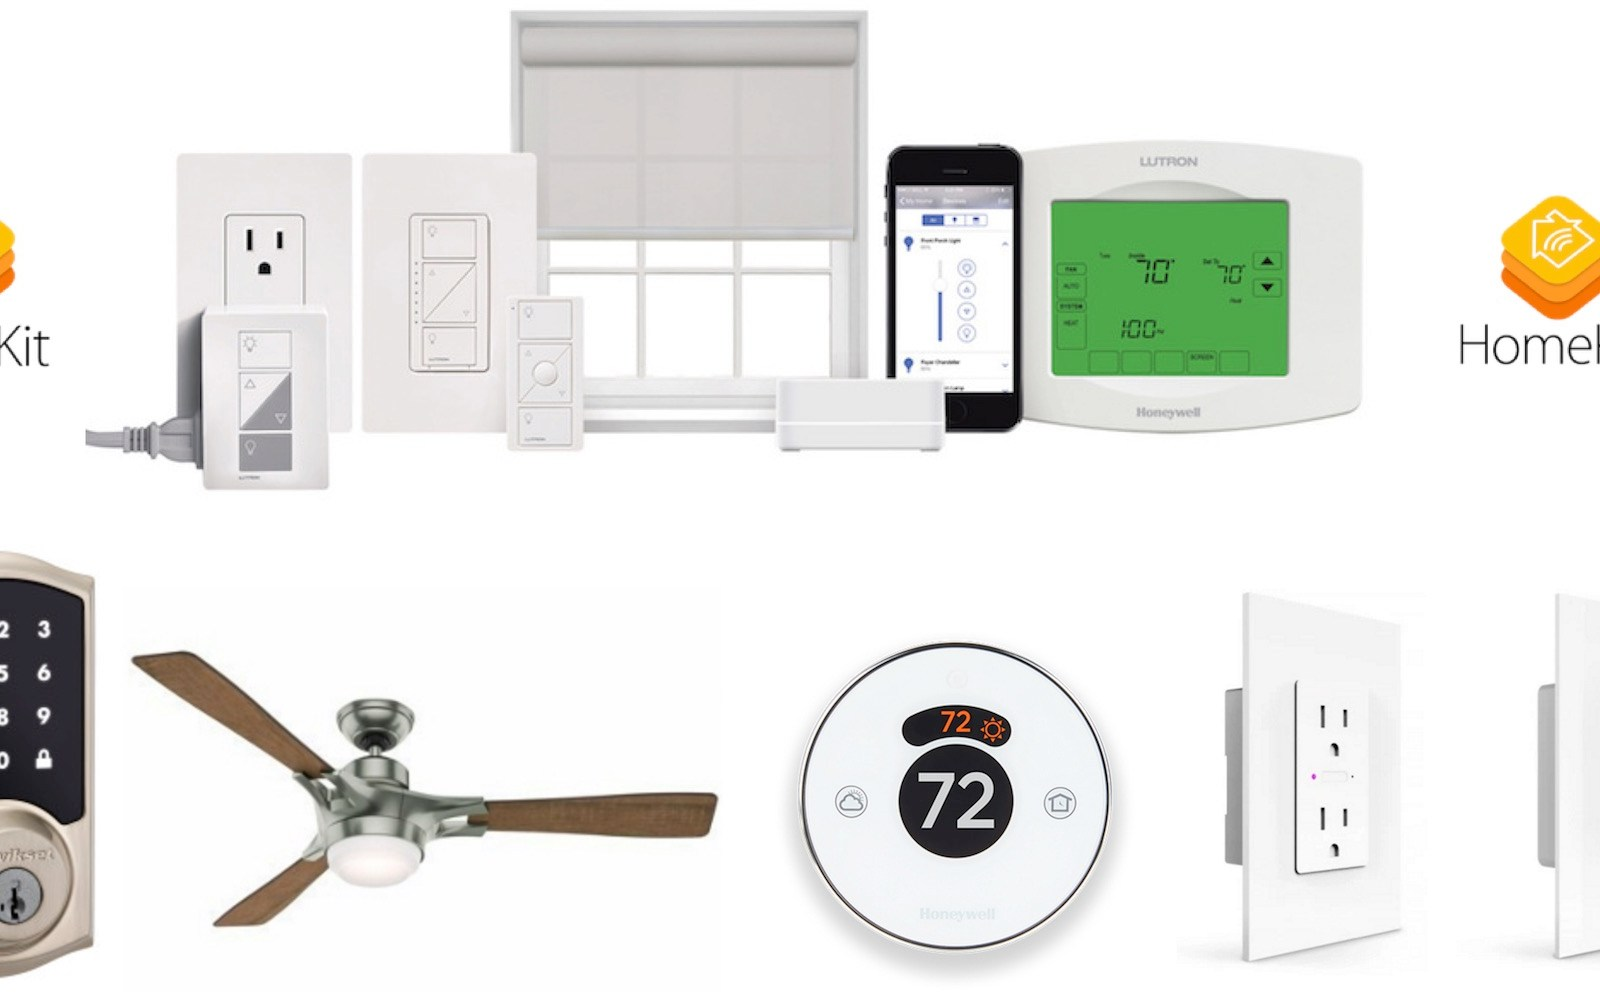 Apple's HomeKit at CES 2016: ceiling fans, door locks, switches, thermostats, & more